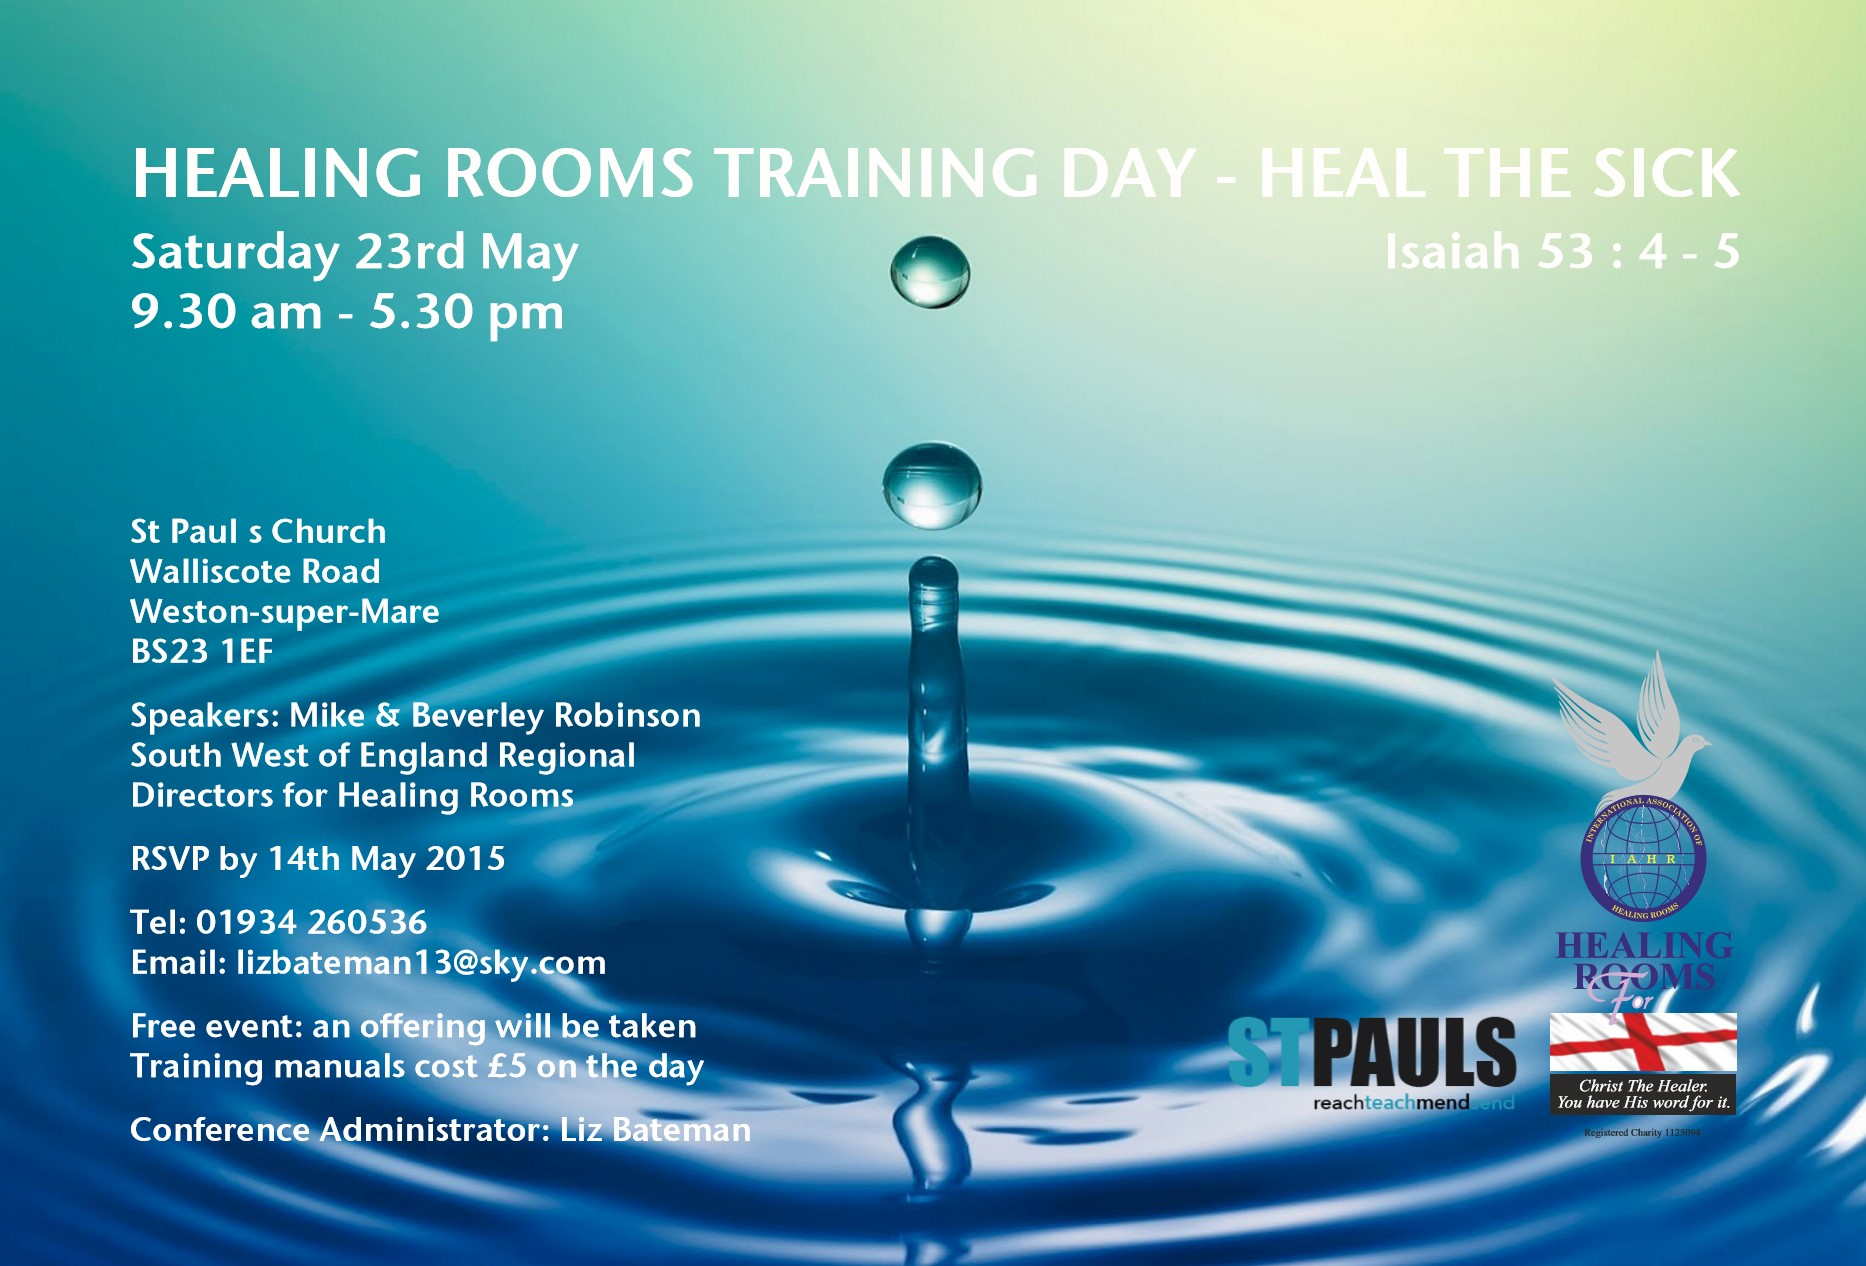 Healing Rooms Training Day | Churches Together in Plymouth